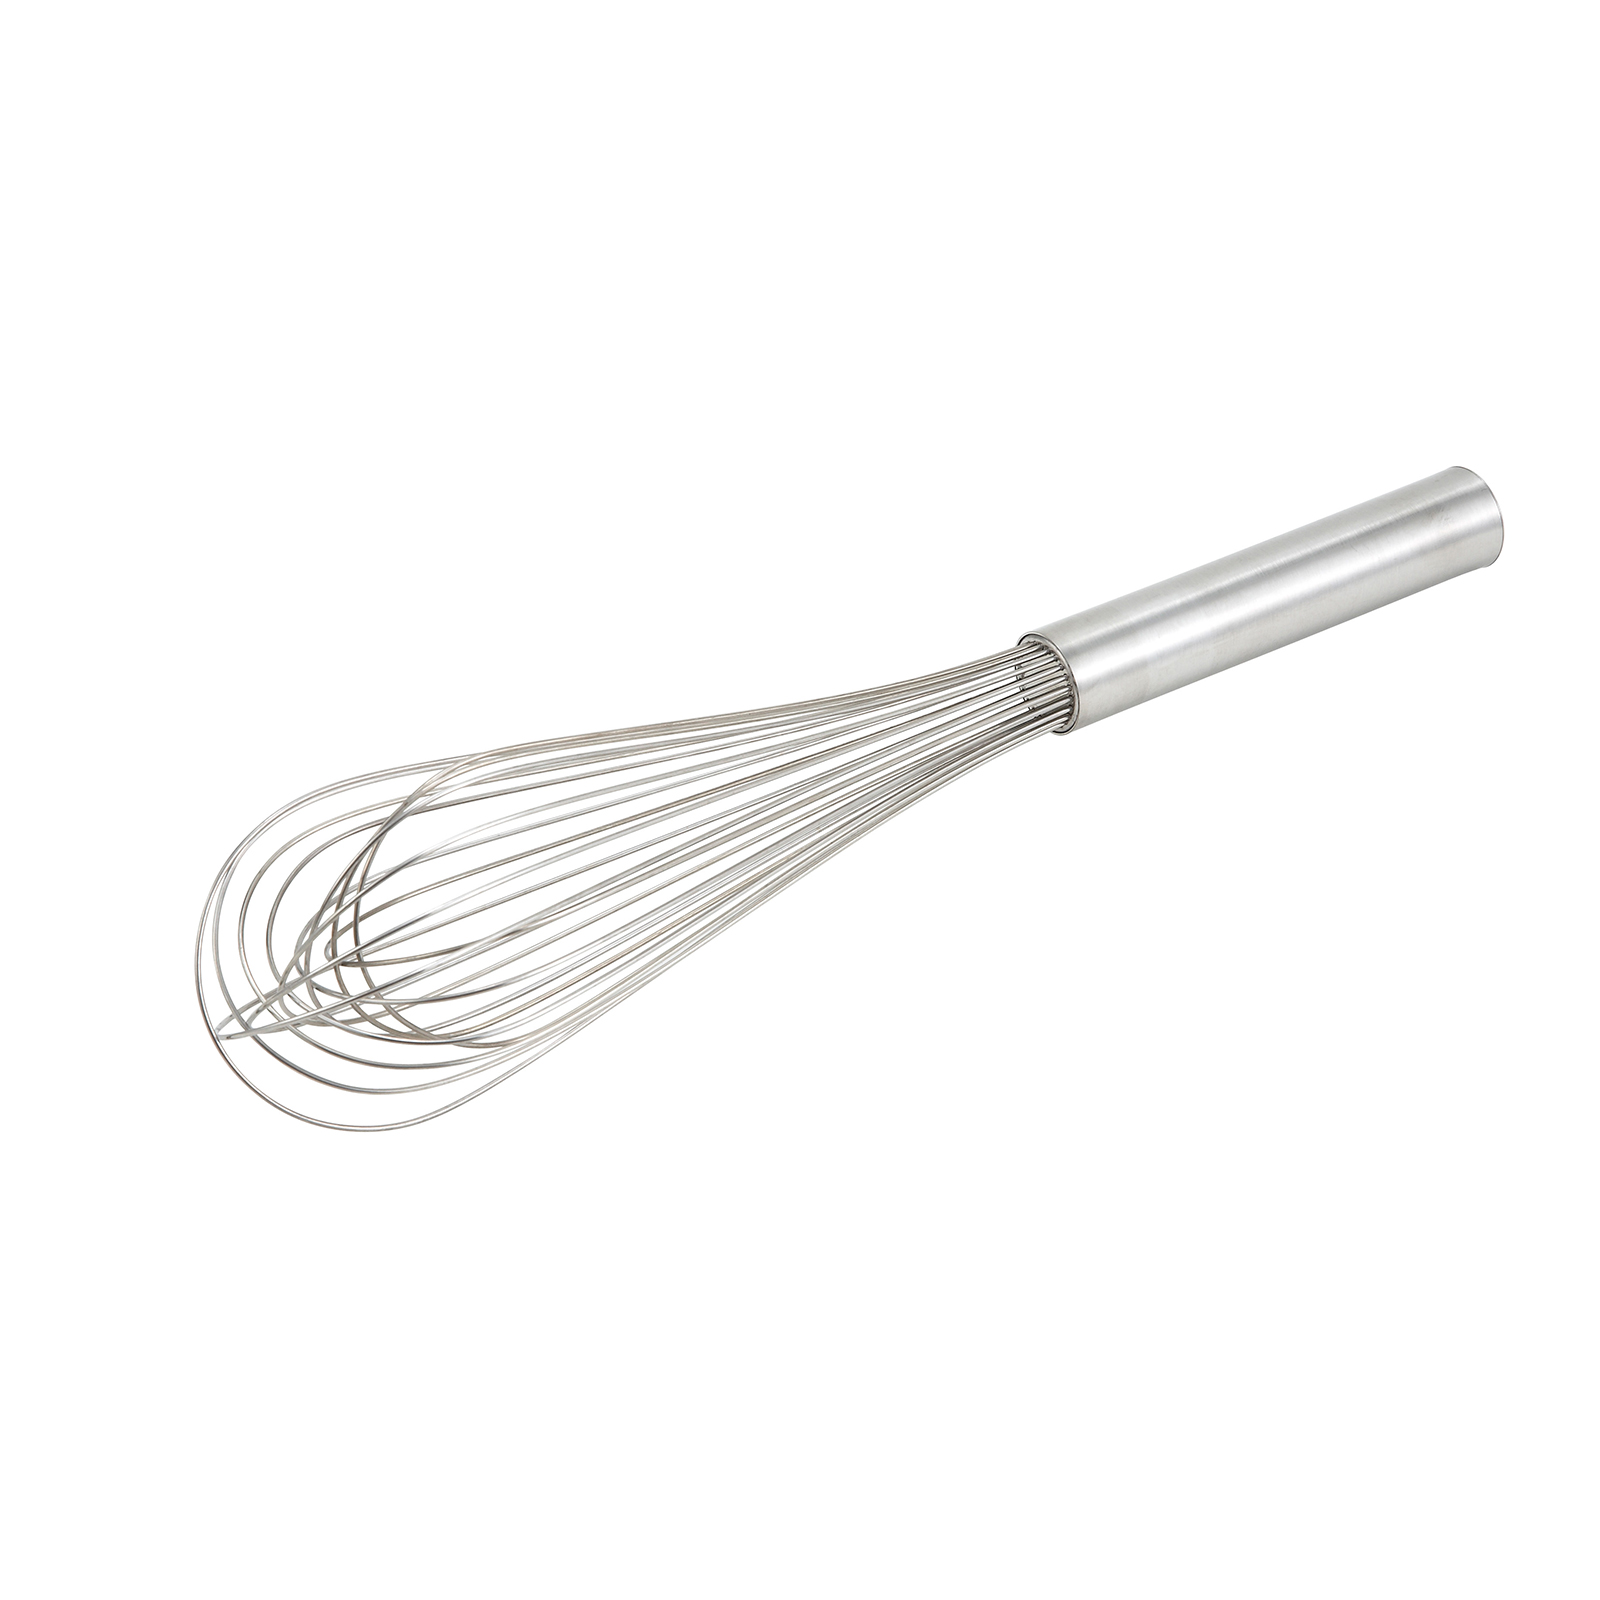 Winco PN-10 piano whip / whisk